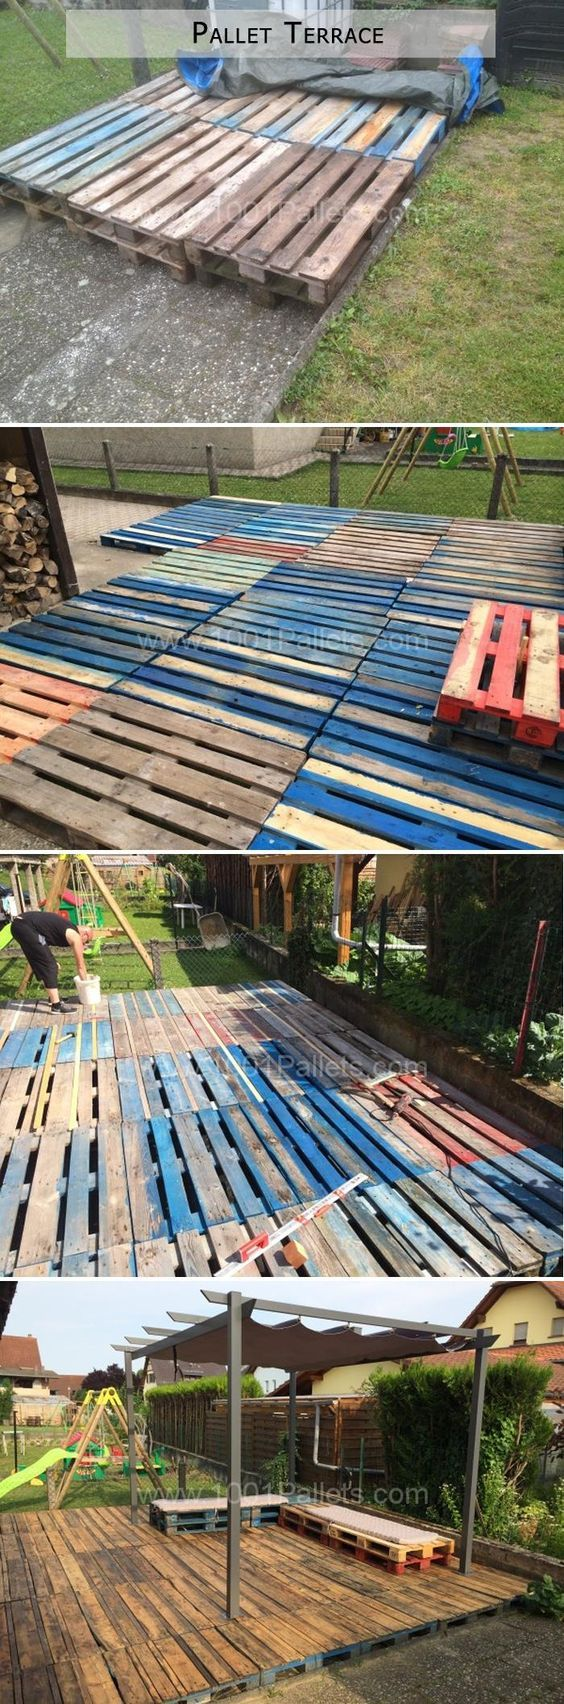 c4cdea1b6c2983c358eda070df97a763 old pallets camping life